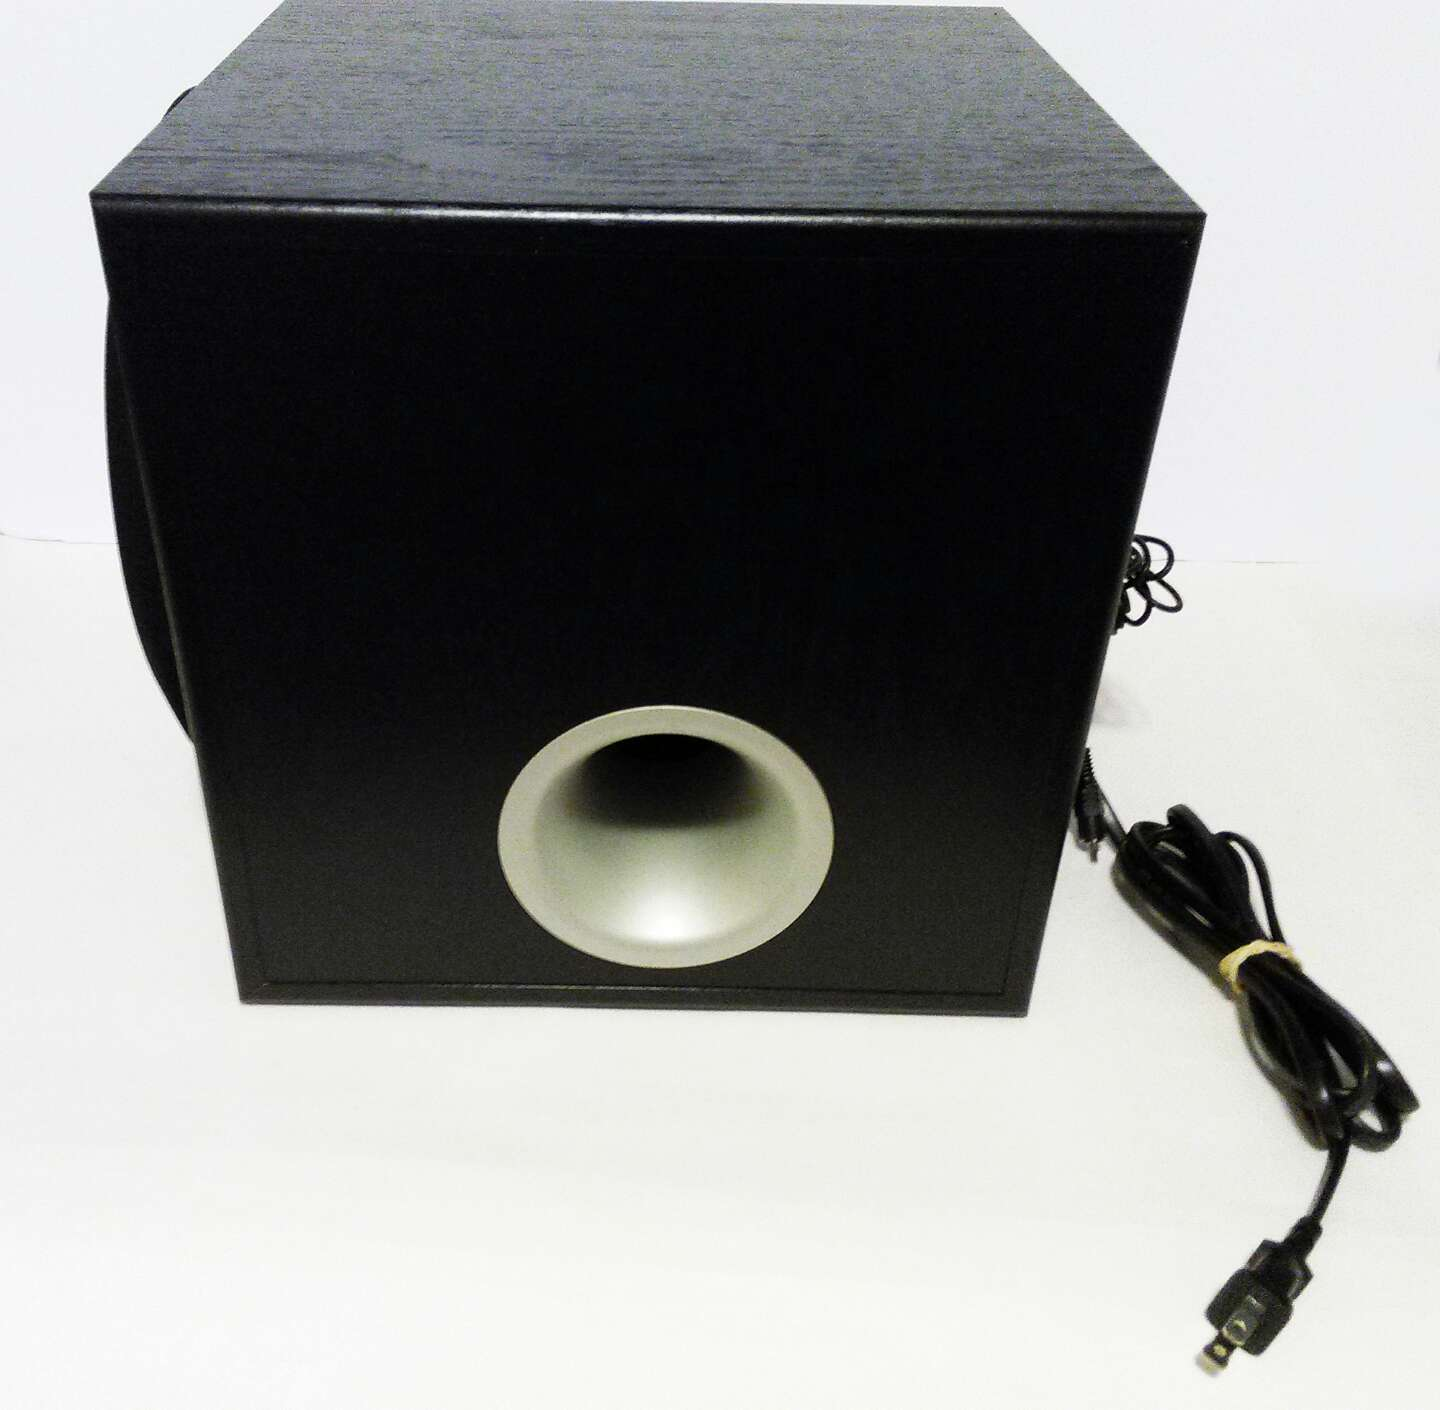 yamaha yst sw012 subwoofer 45w for sale in casselberry fl. Black Bedroom Furniture Sets. Home Design Ideas